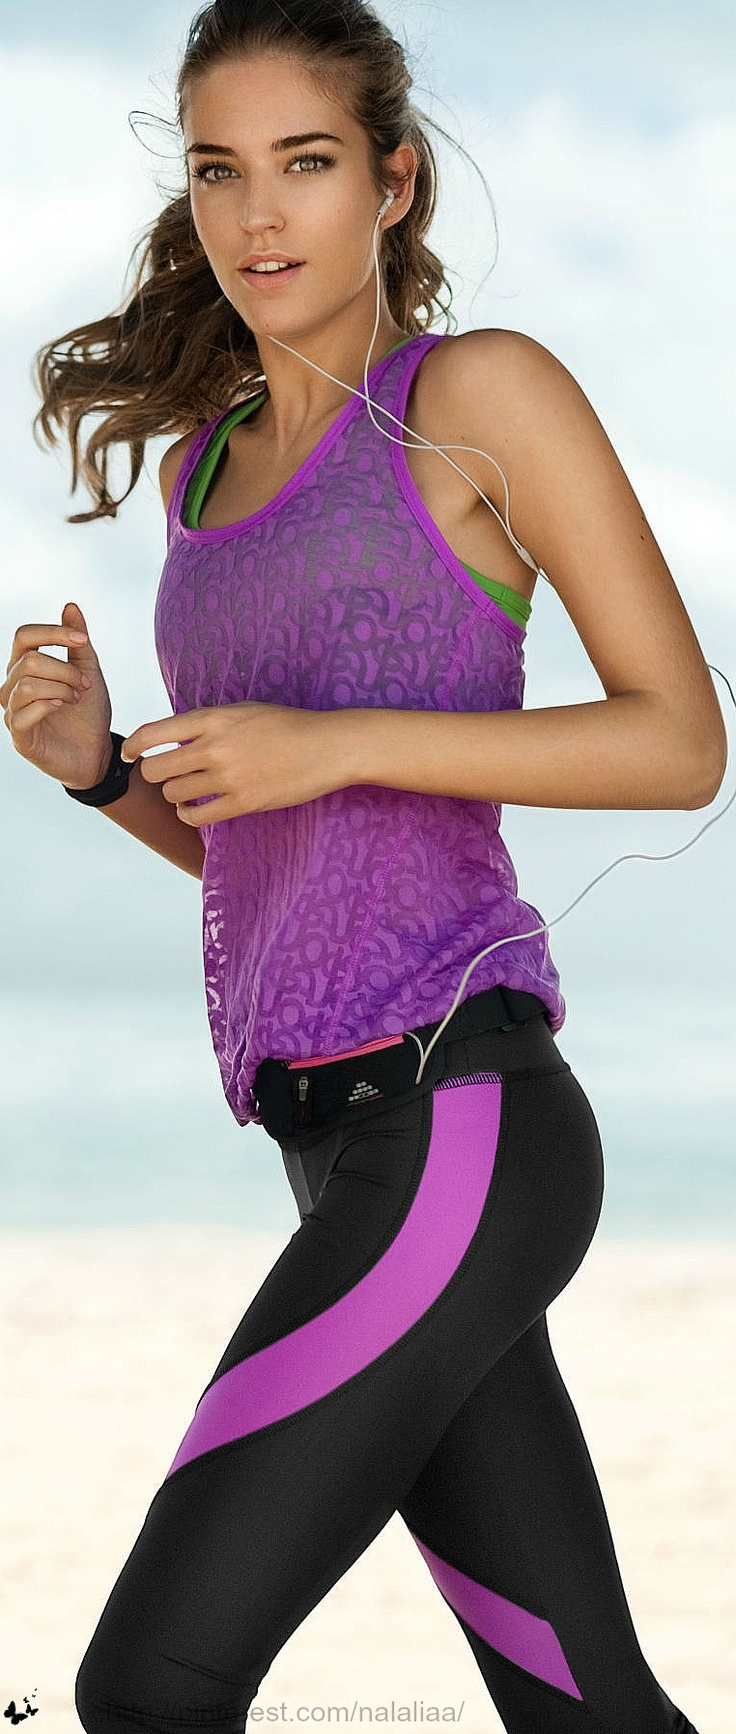 Nothing like adorable workout clothes as motivation to get active ;)